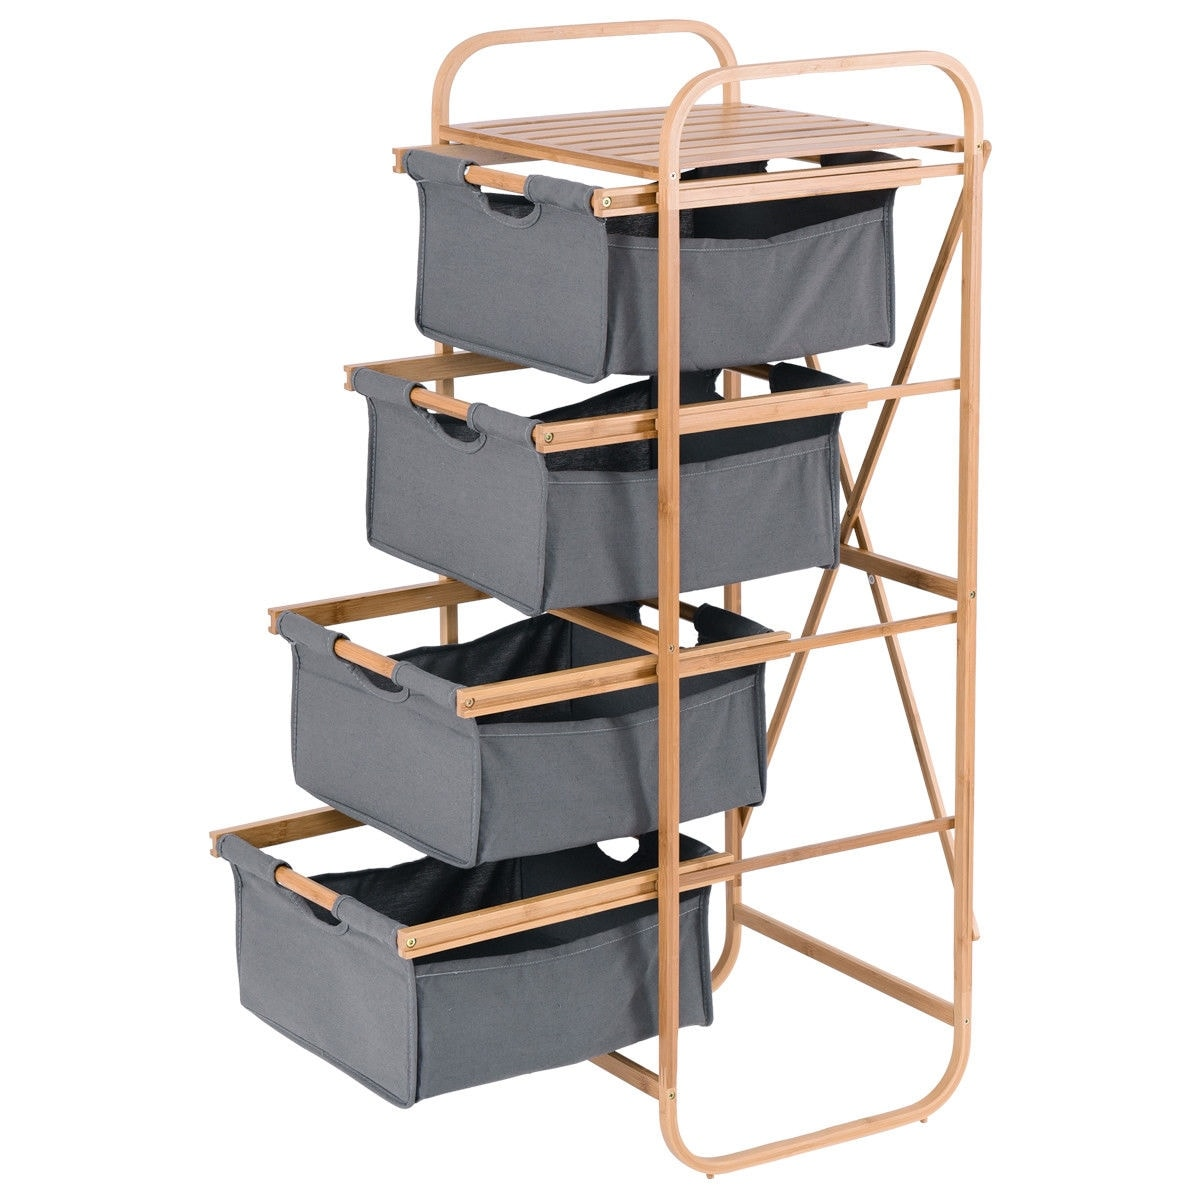 Shop Costway 4 Sliding Drawer Bamboo Dresser Storage Unit Organizer Laundry H&er Rack - Free Shipping Today - Overstock.com - 20476006  sc 1 st  Overstock.com & Shop Costway 4 Sliding Drawer Bamboo Dresser Storage Unit Organizer ...